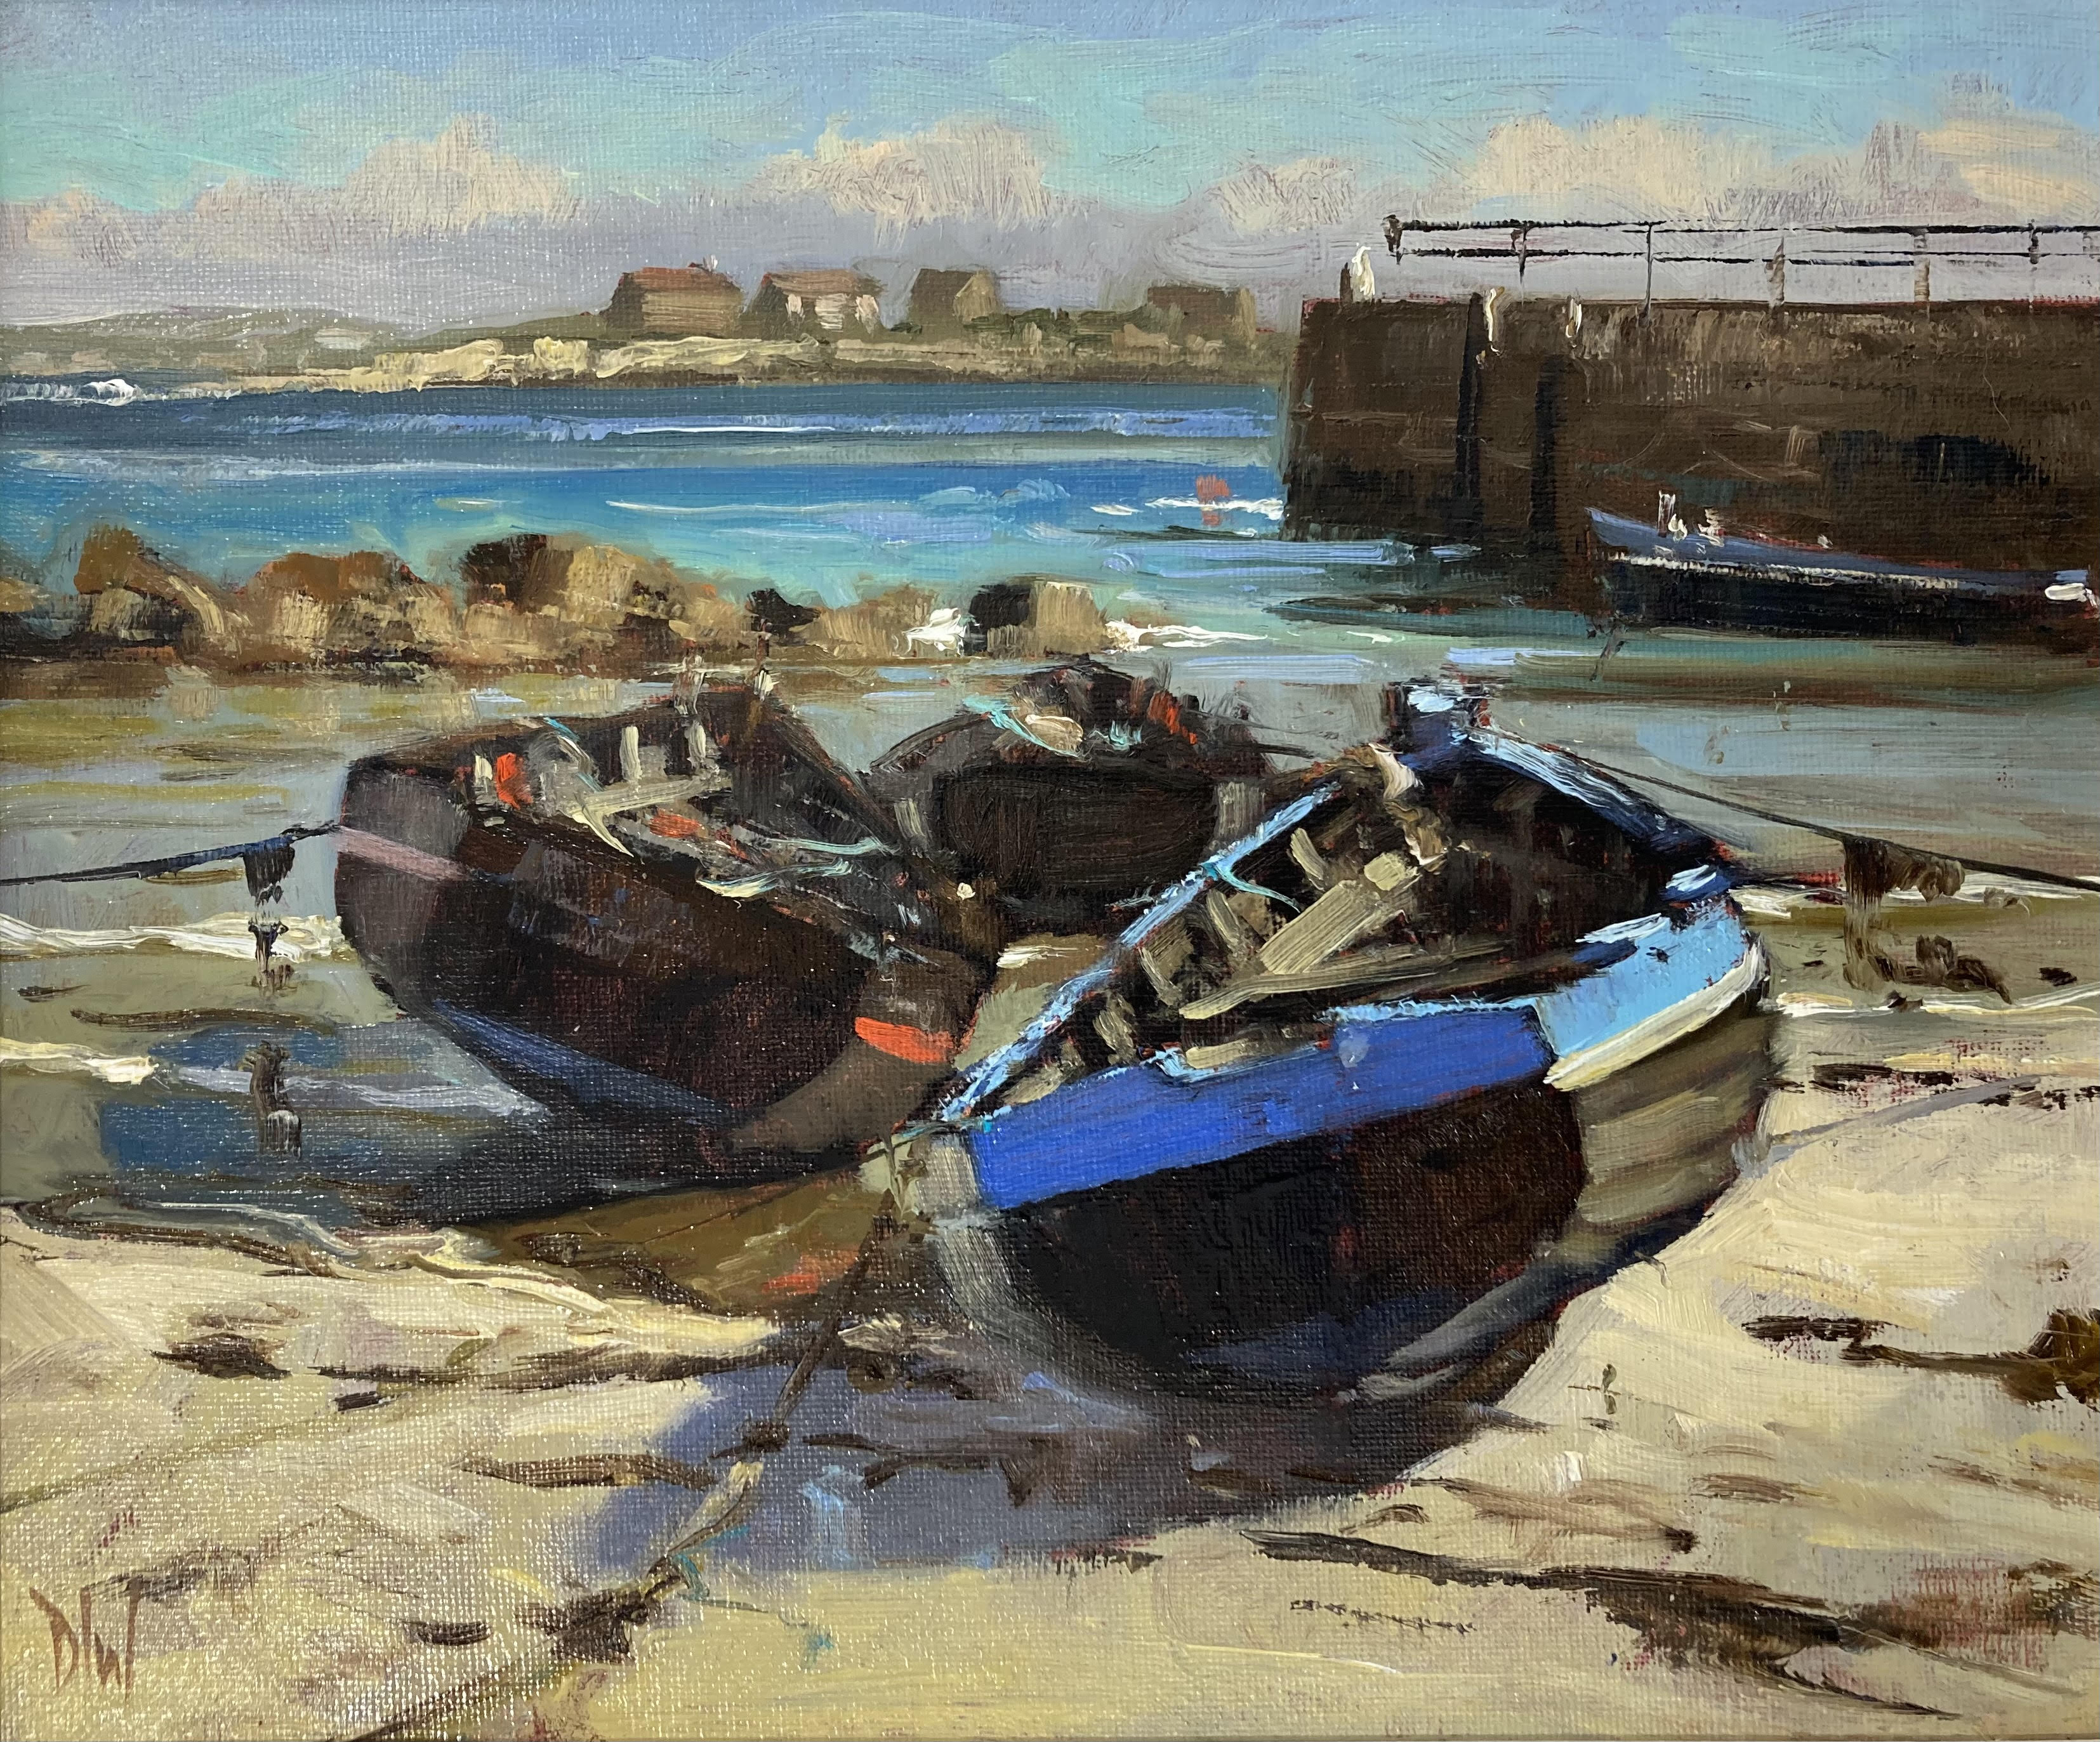 Boats at Ervallagh, Roundstone by Dave West